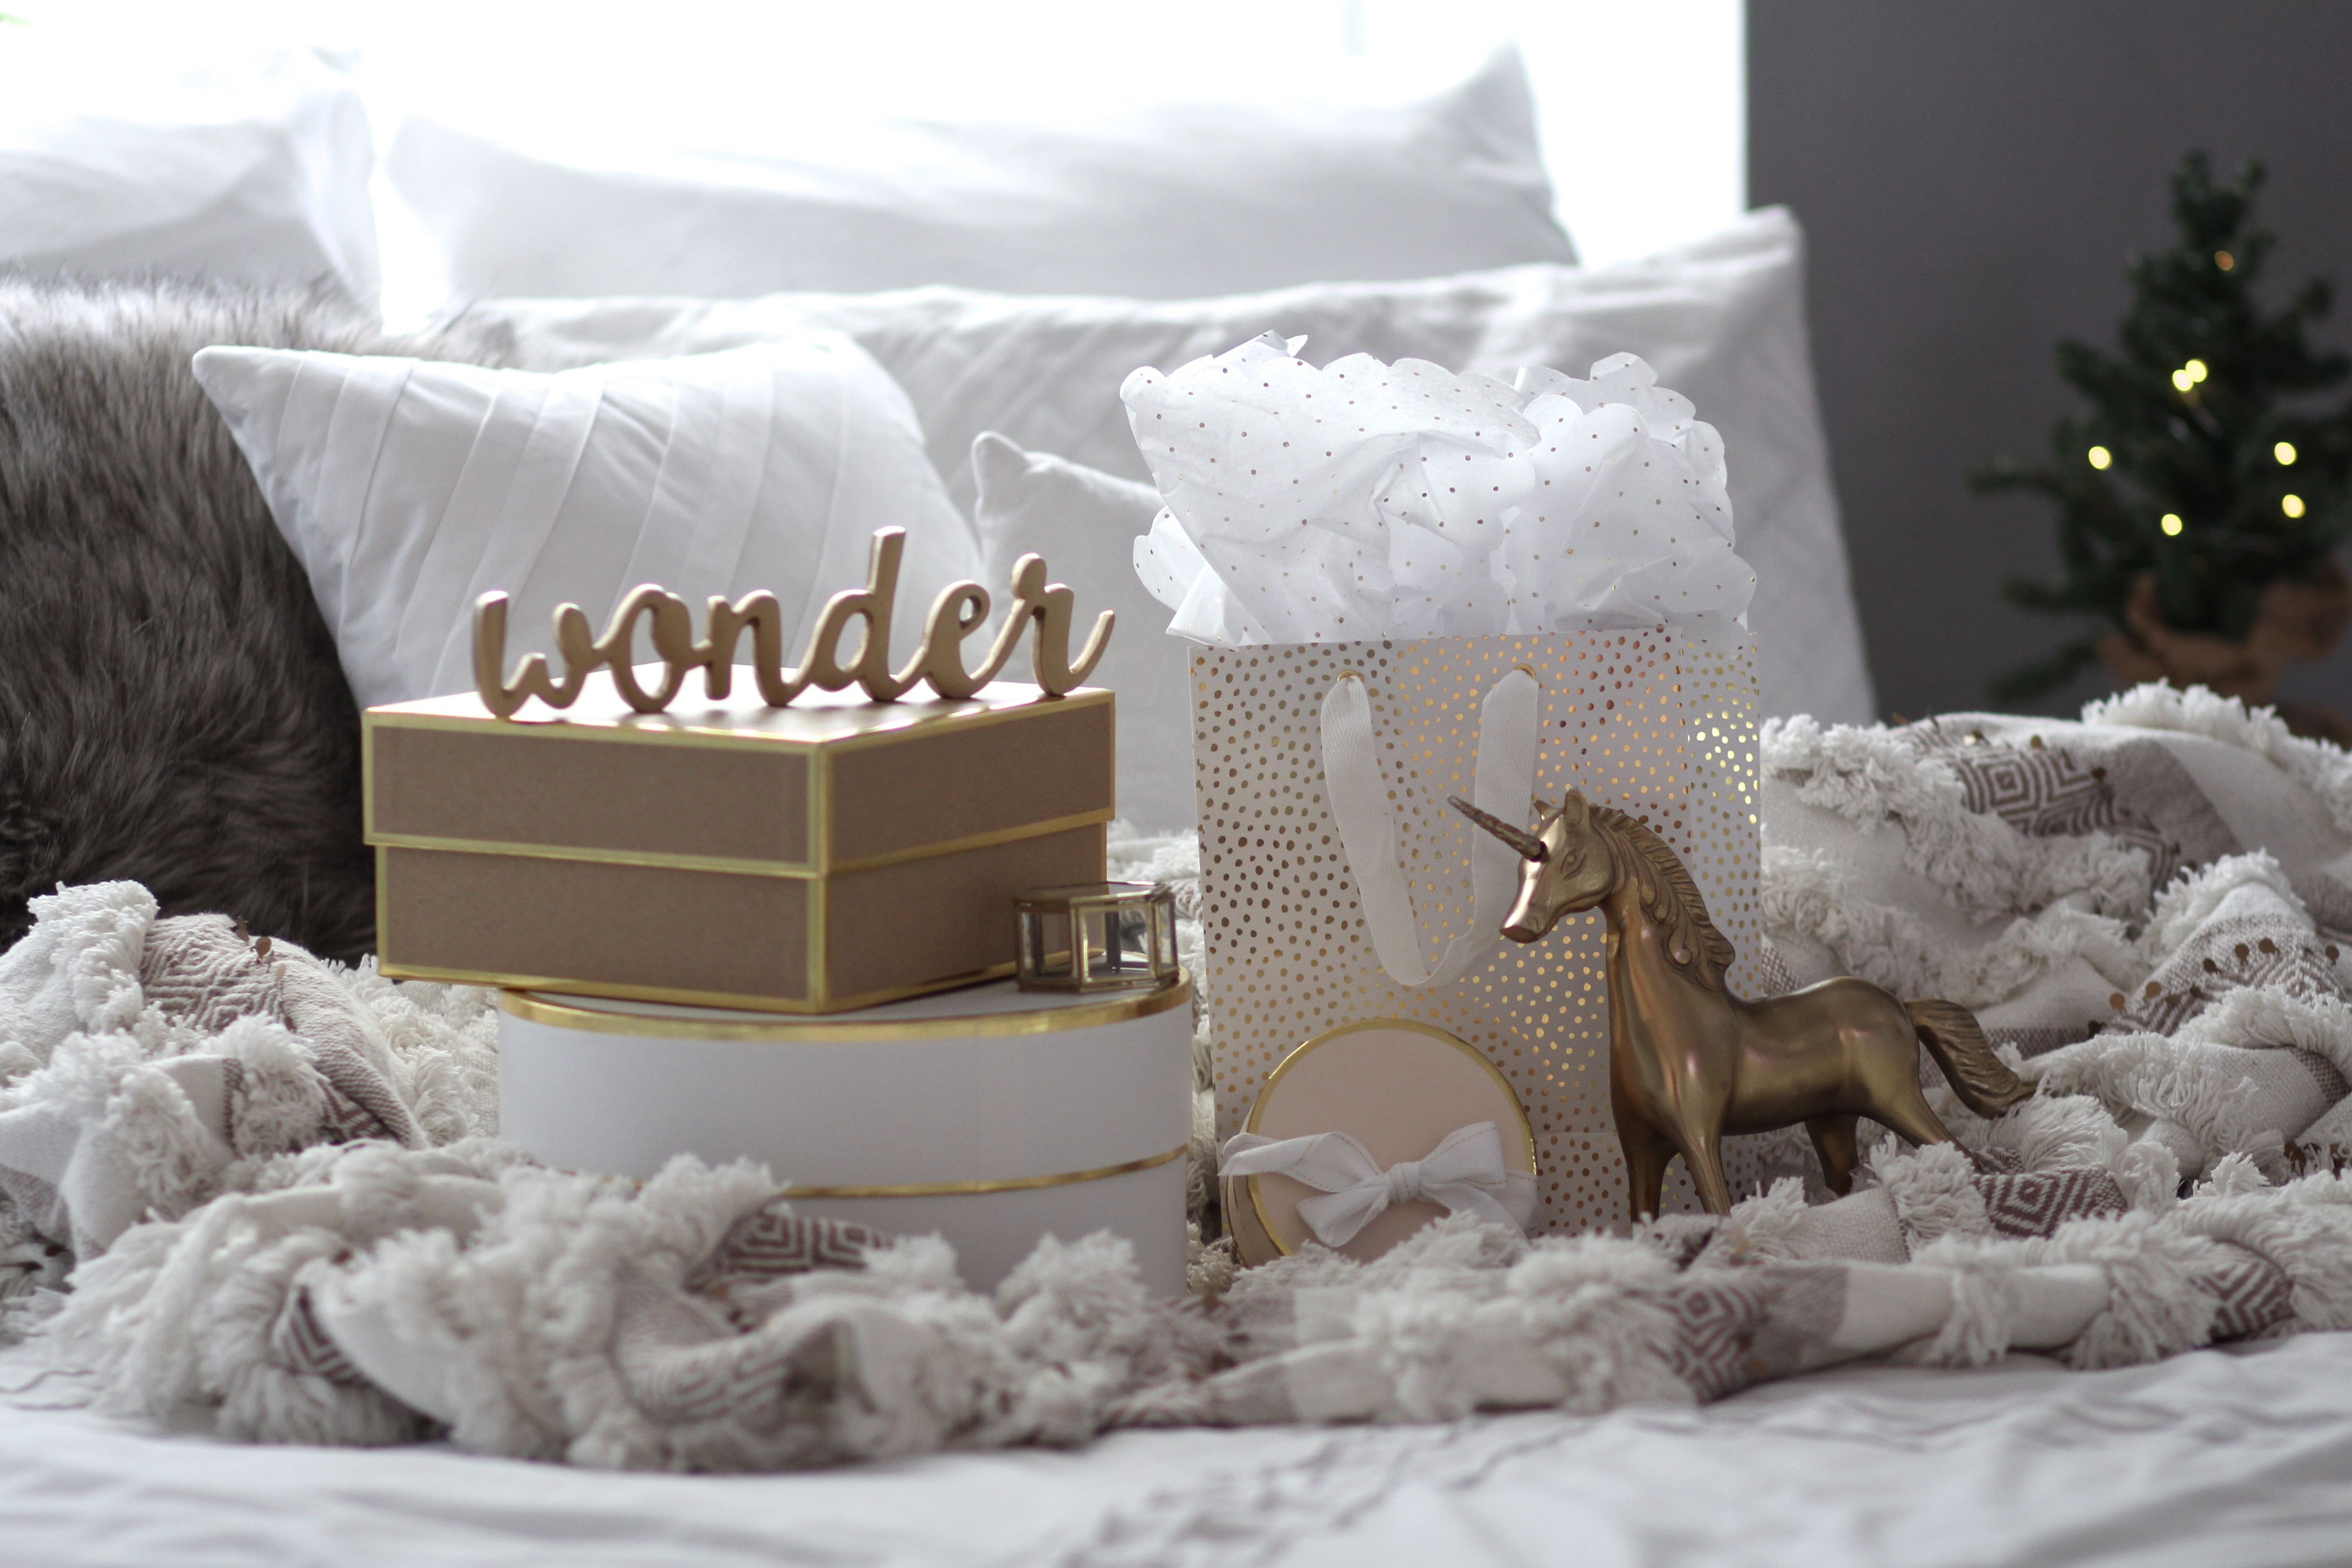 Gold home decor from Marks & Spencer